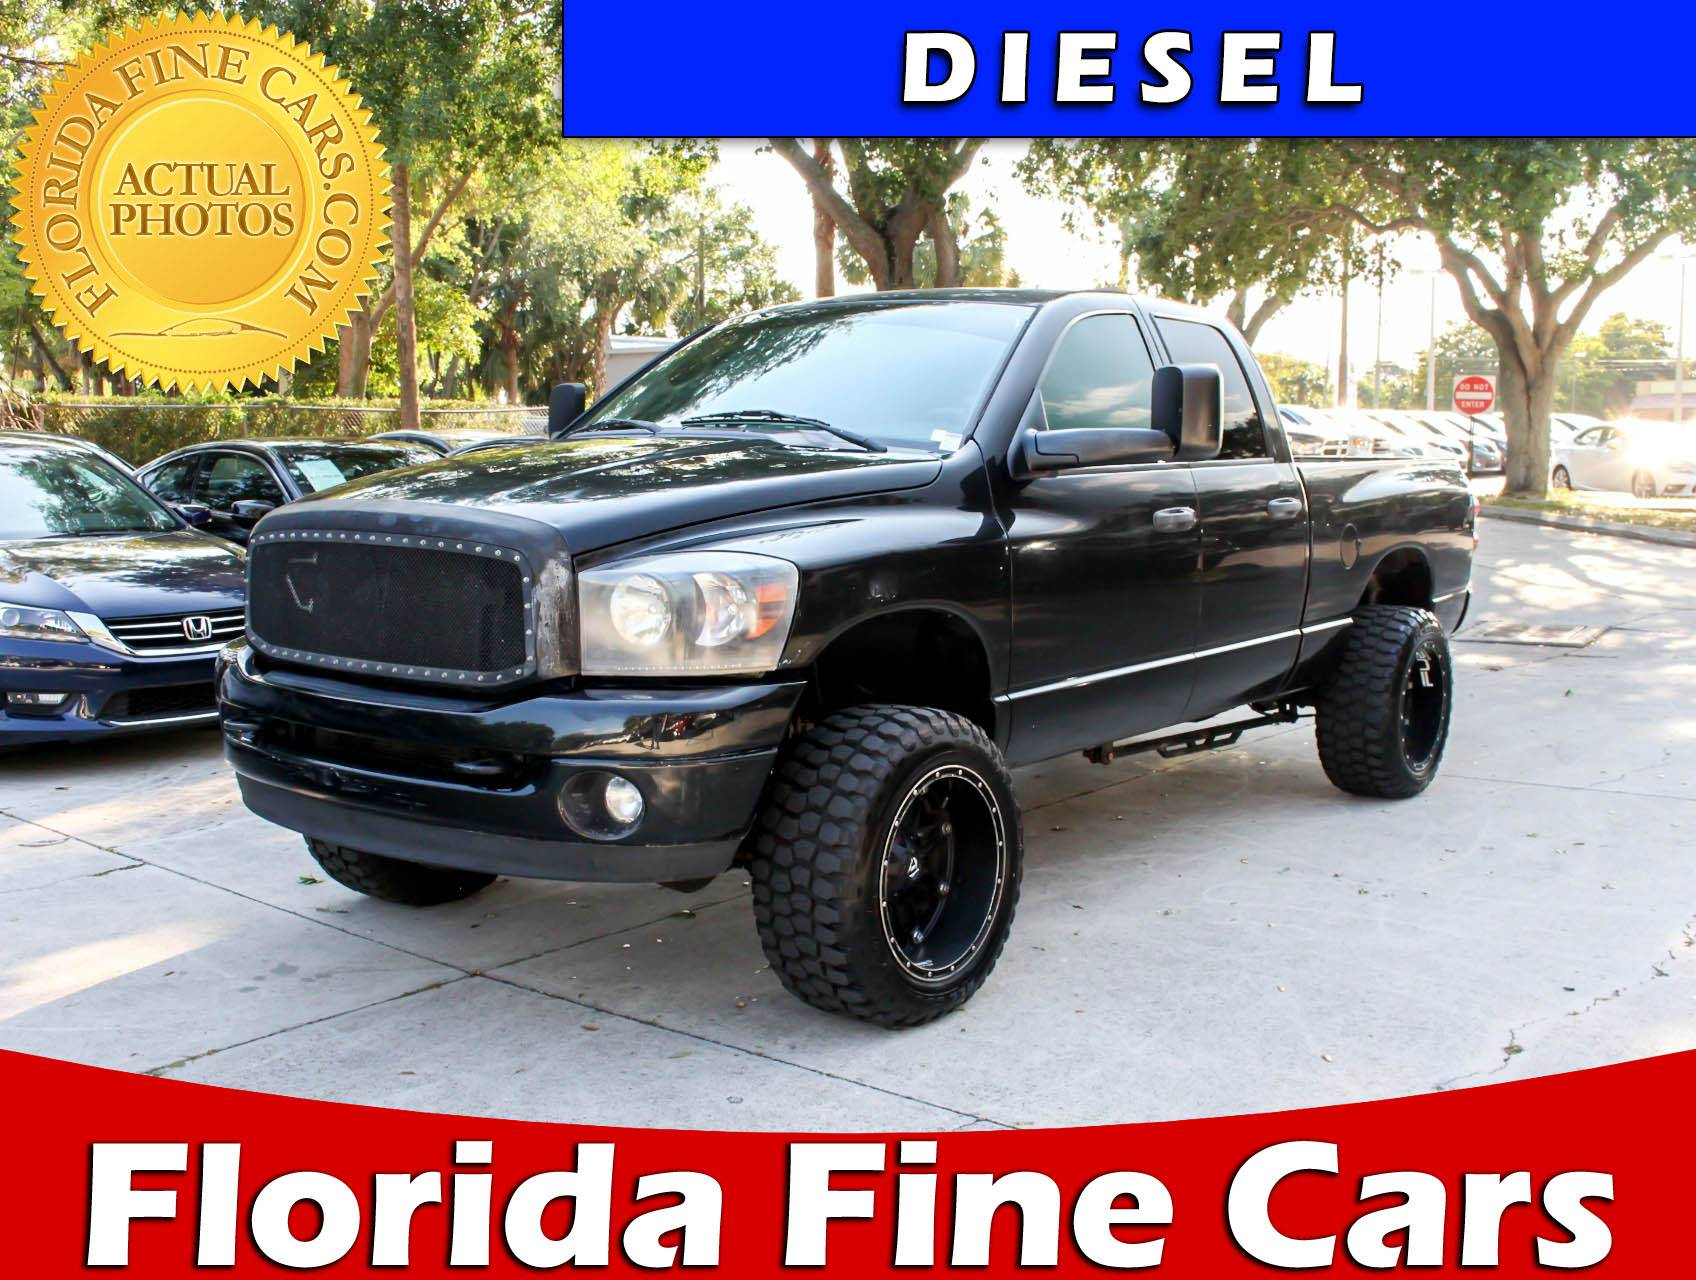 Used 2008 DODGE RAM PICKUP 2500 Slt 4x4 Truck for sale in WEST PALM